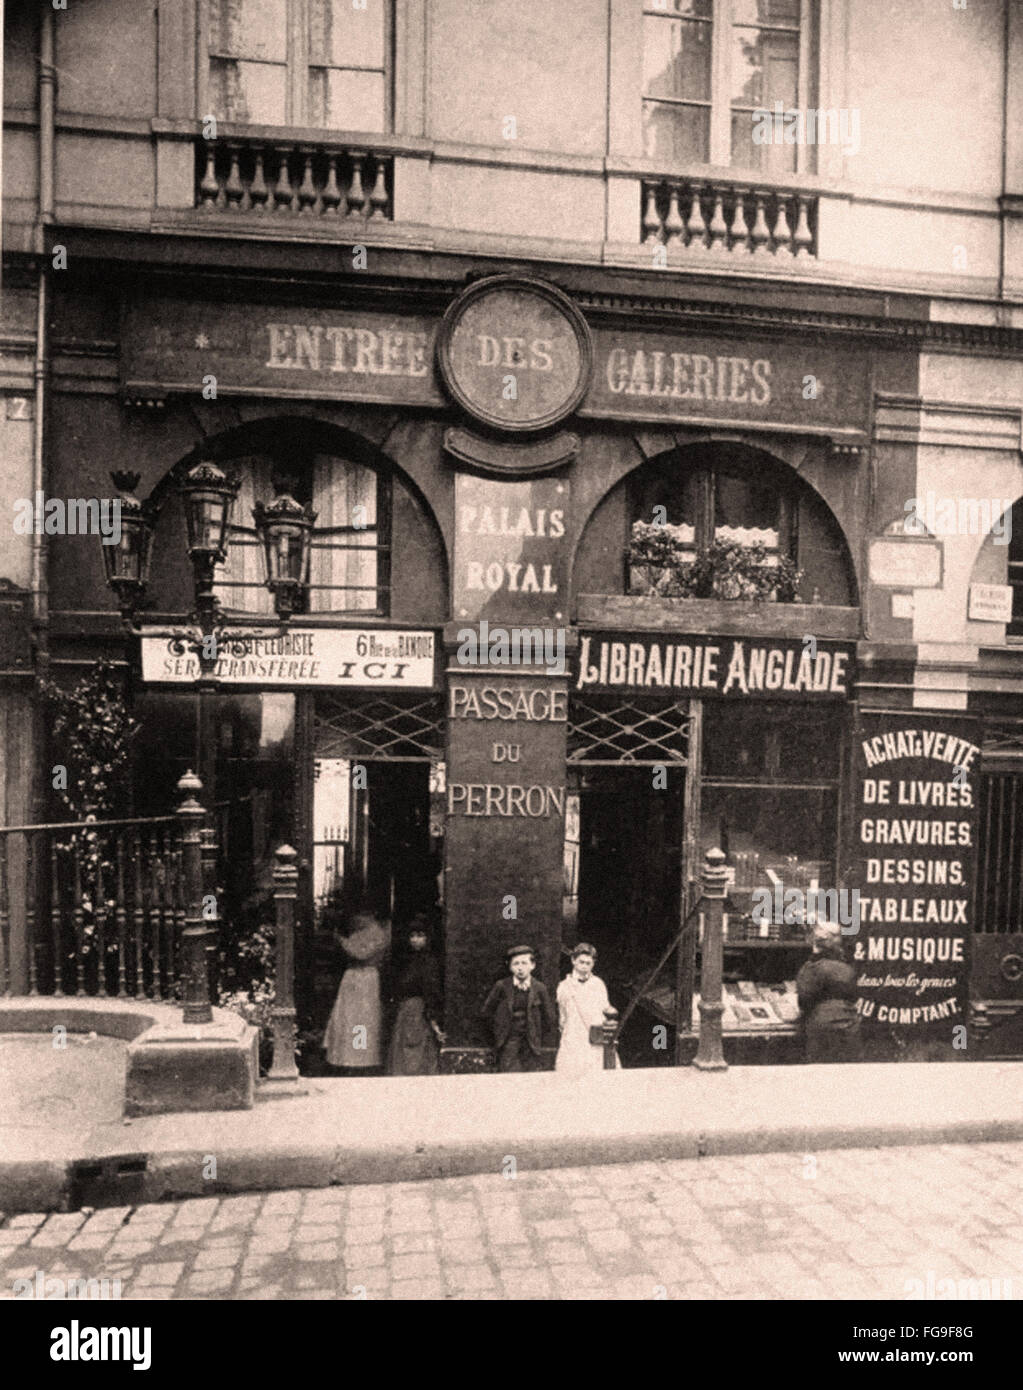 Street scenes of Paris in the Early 20th Century - Stock Image